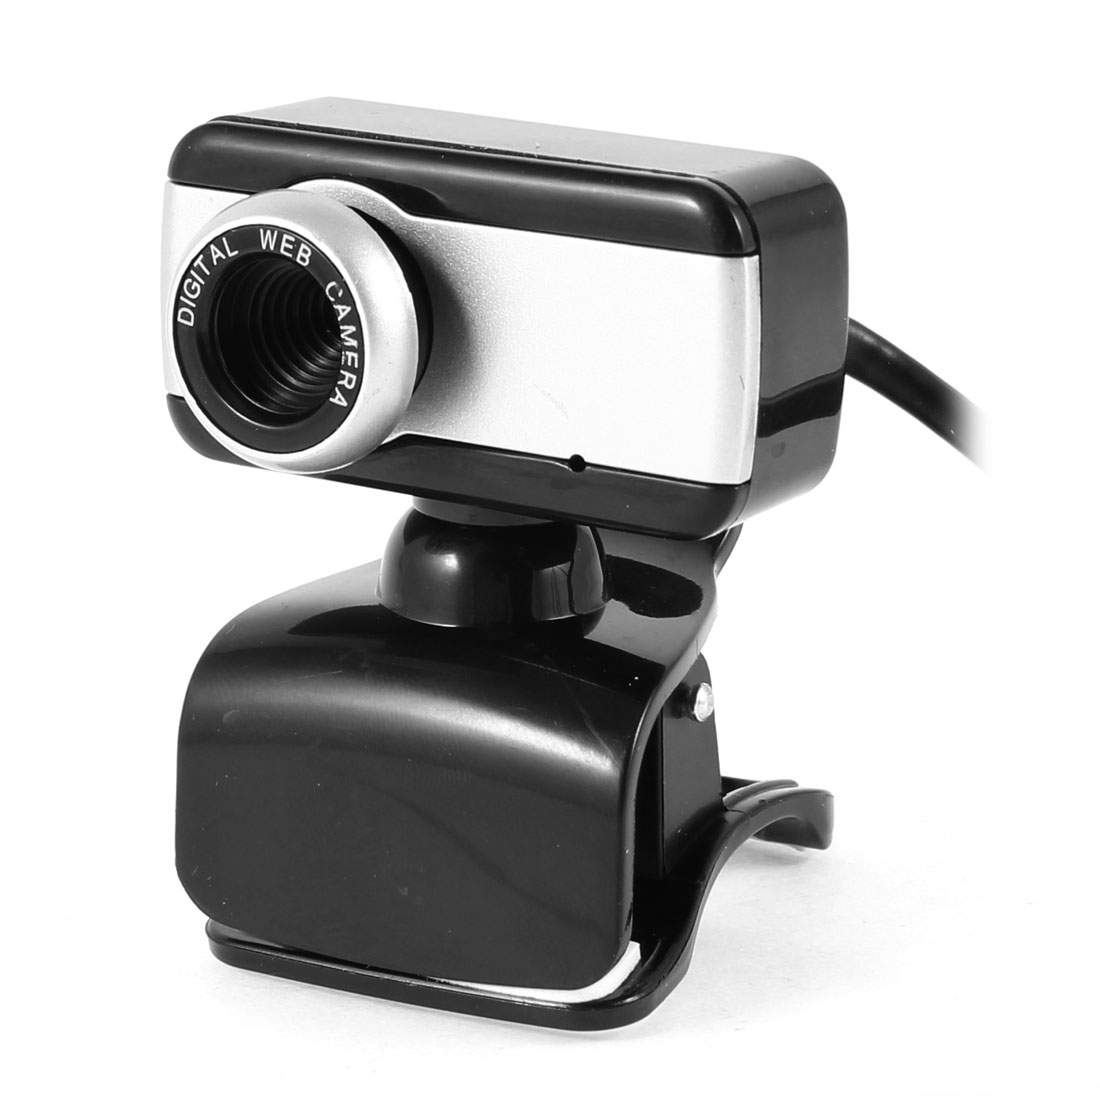 Clip 1004x1004 1.3 Mega Pixels Camera USB2.0 MIC Webcam Black for PC